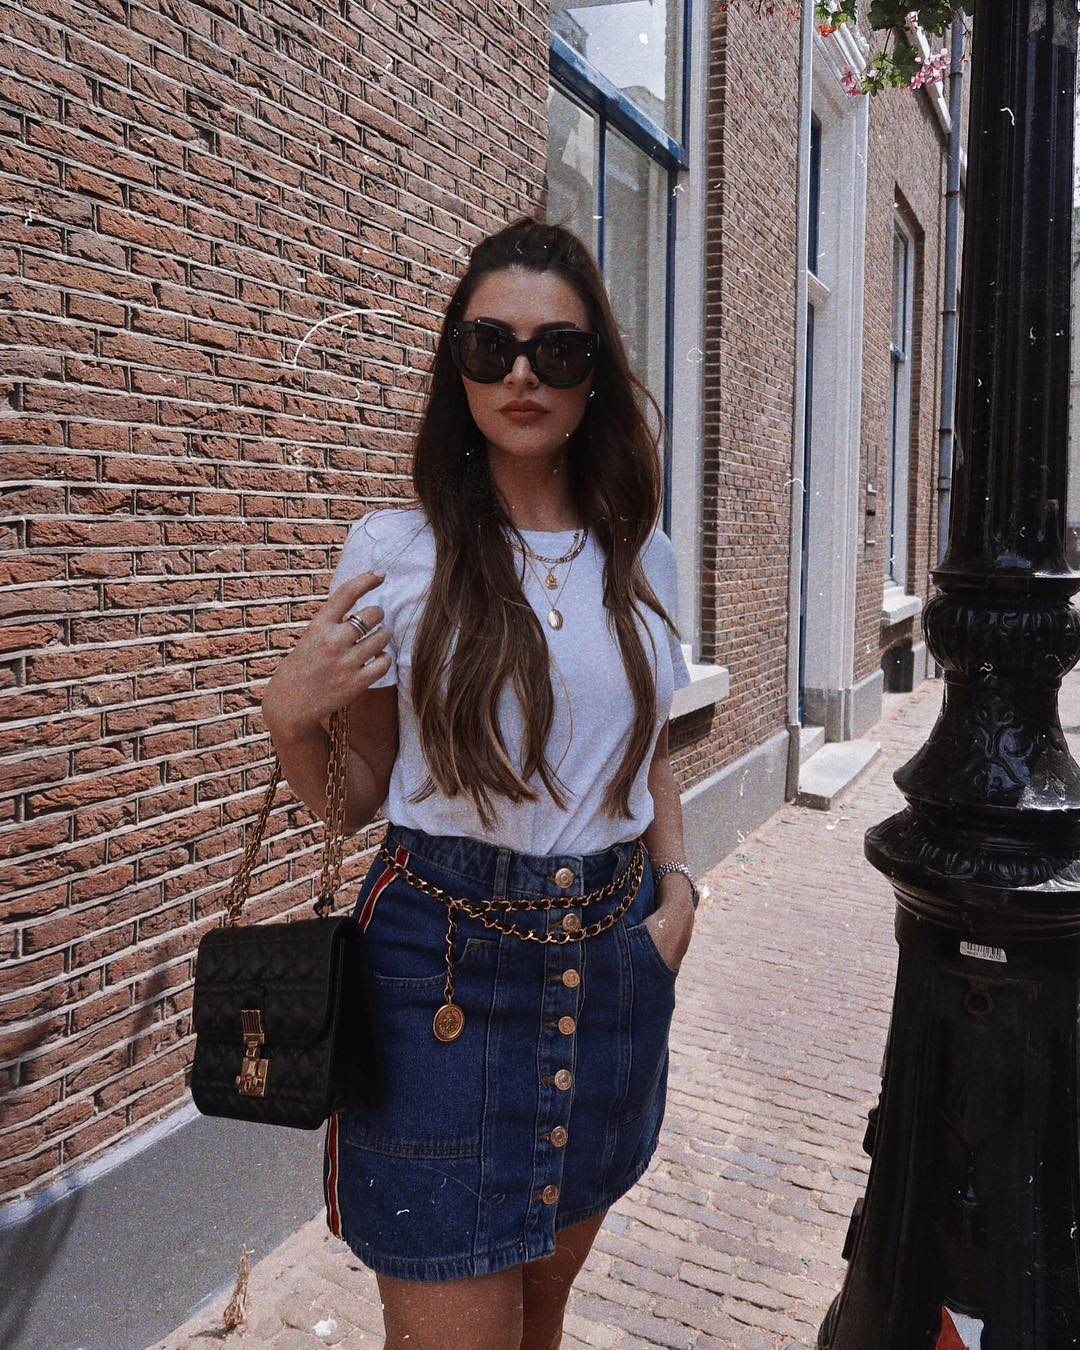 White Tee And Denim Skirt: Simple Summer Day Look 2019